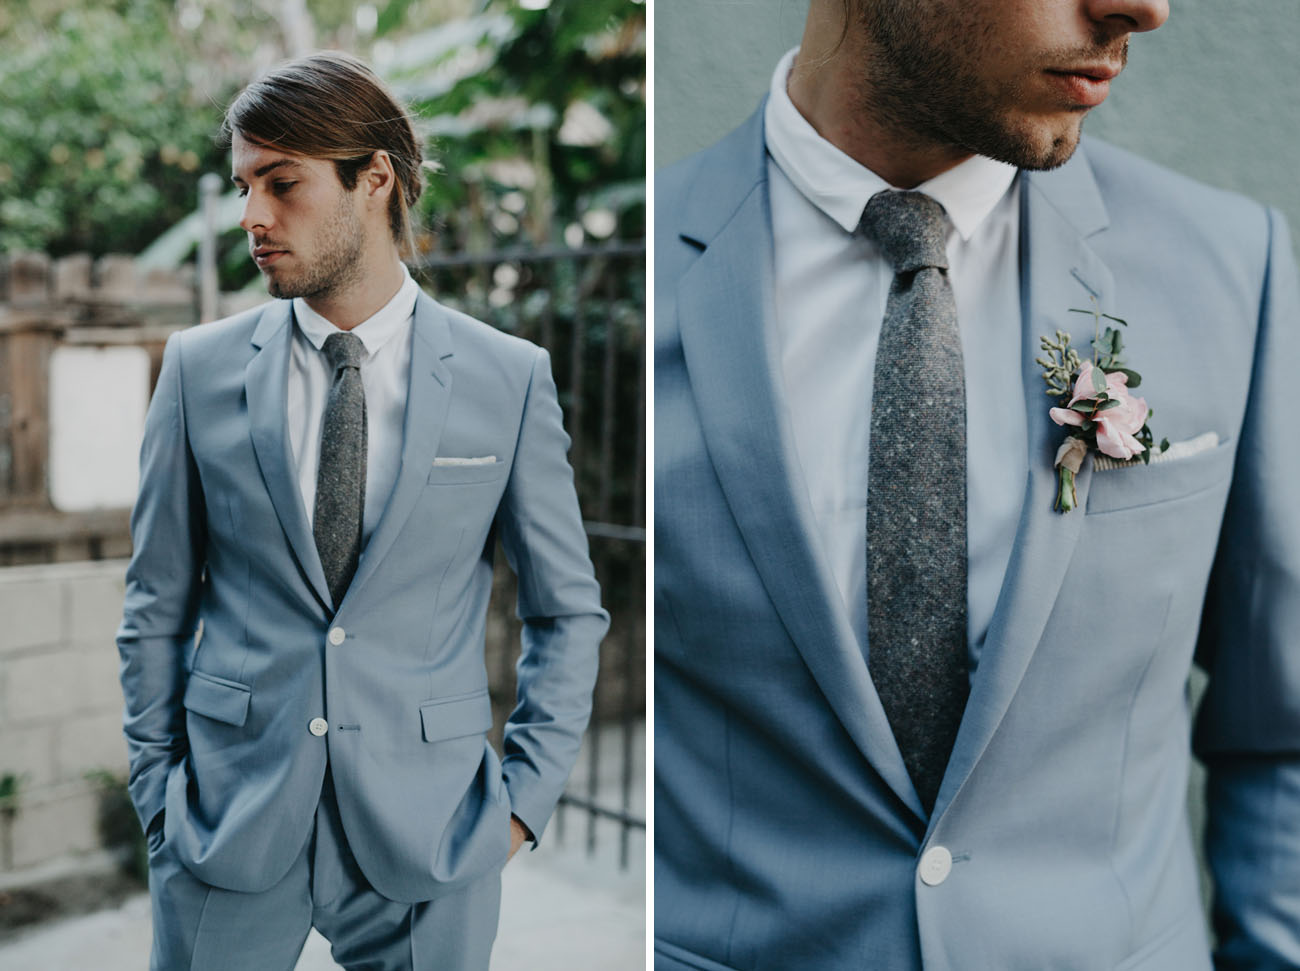 Groom Fashion Style Inspiration with Dark Bowtie Fabric | roowedding